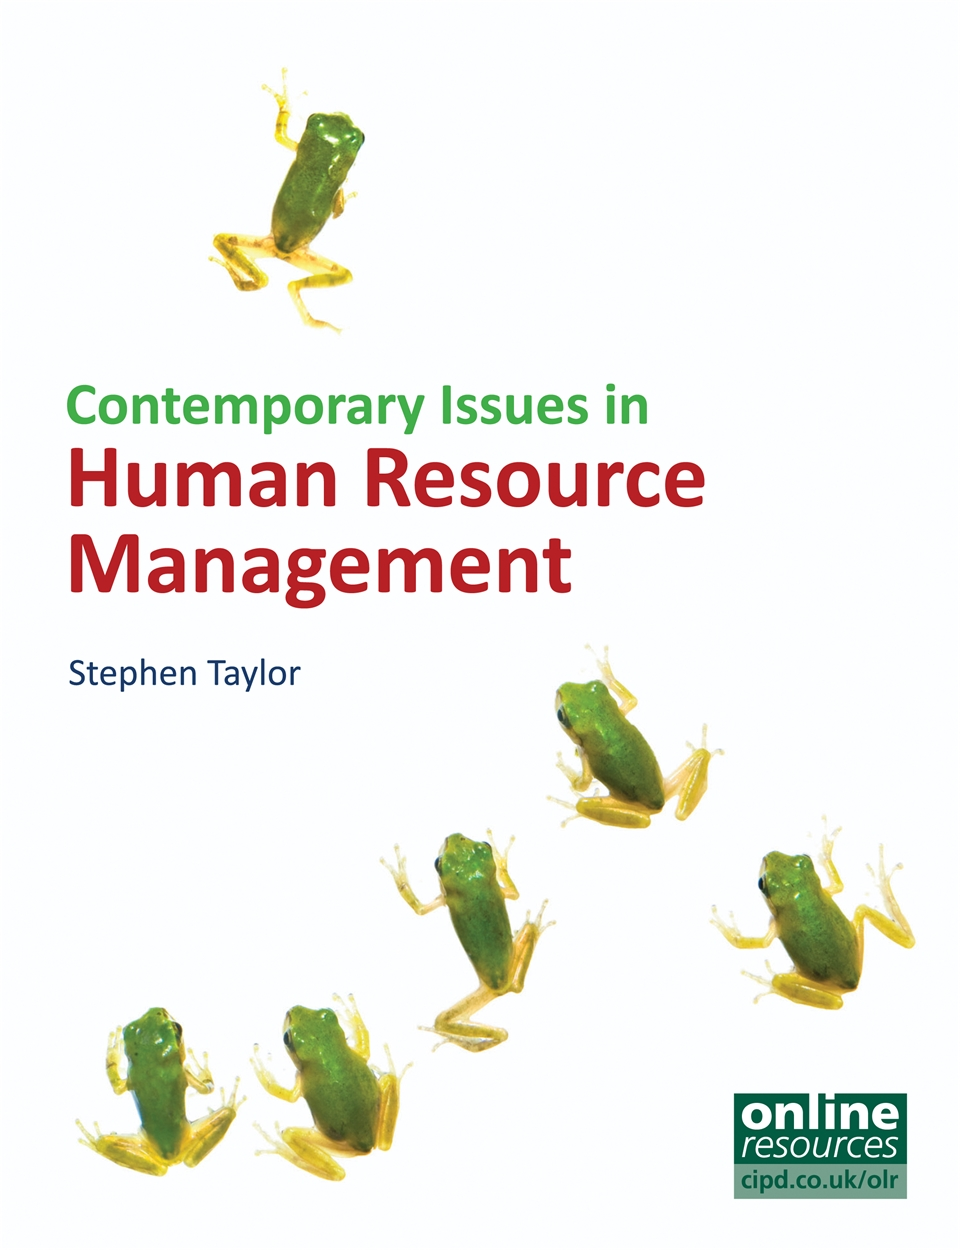 Contemporary Issues in Human Resource Management (9781843980582)